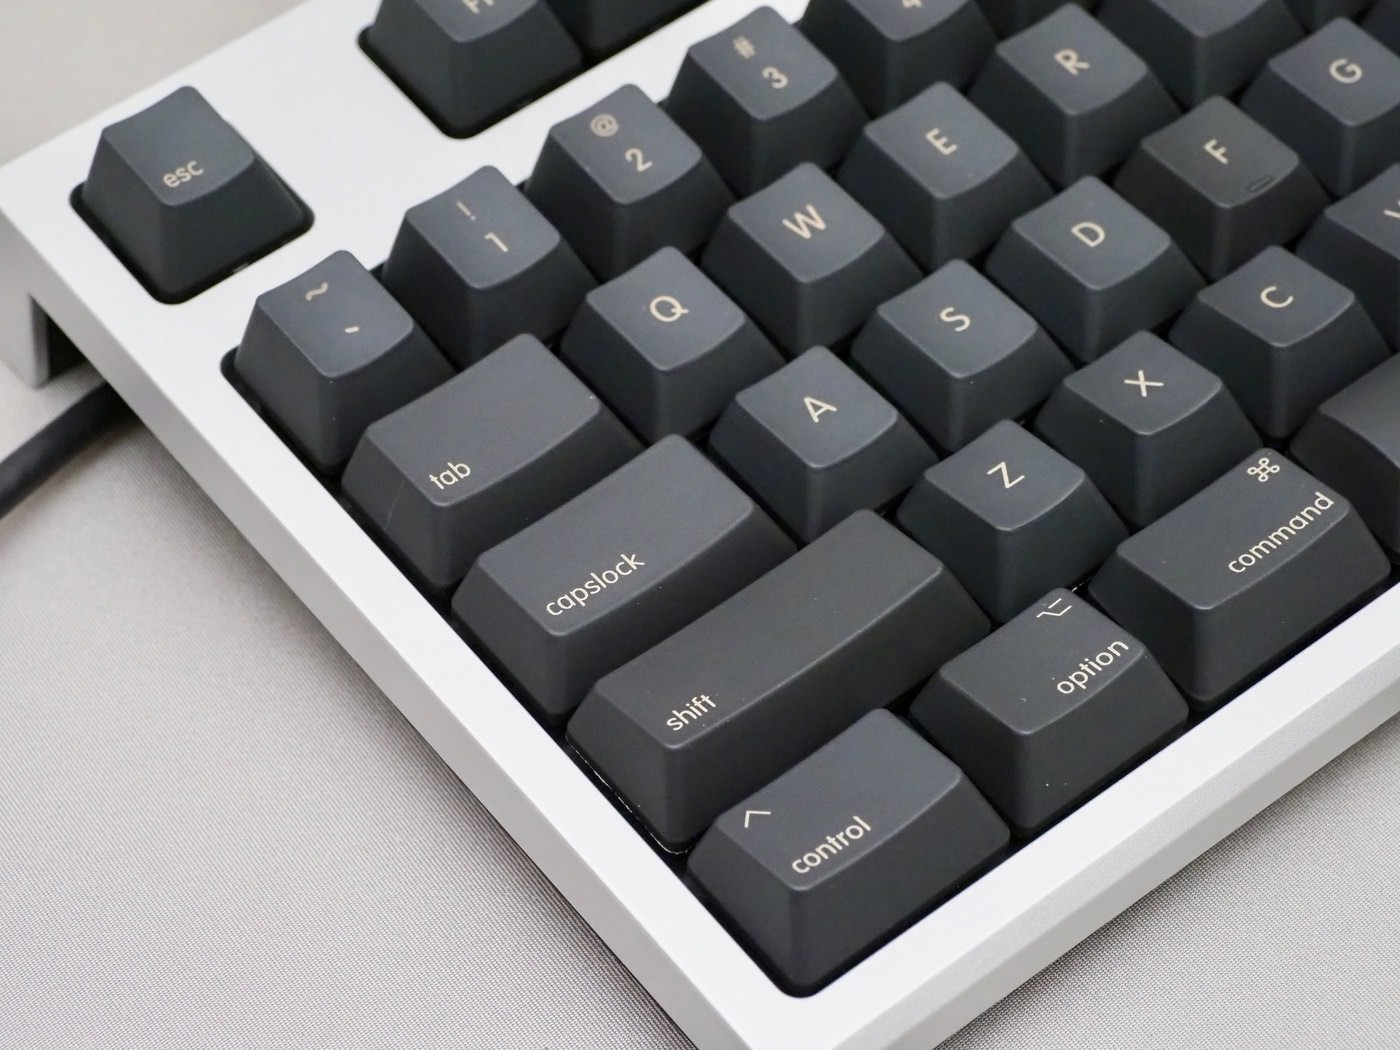 realforce-tkl-for-mac-pfu-limited-edition-review_00033